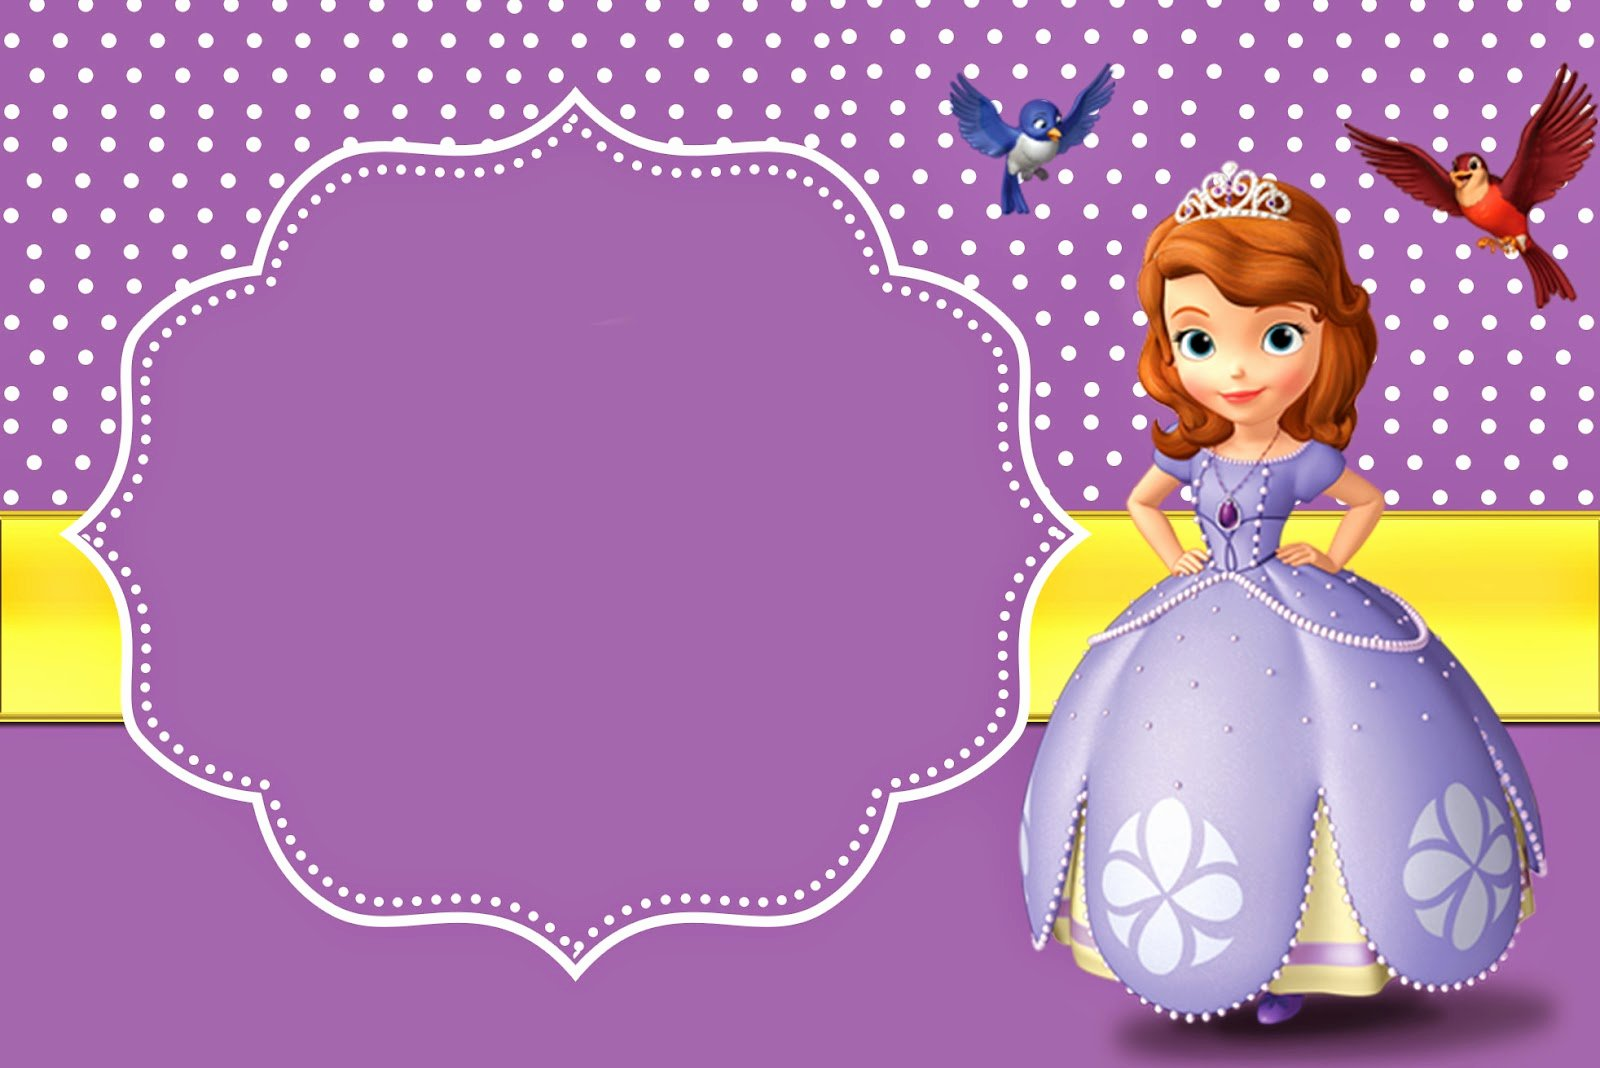 Sofia the First Template Luxury 8 Best Of Free Printable Princess sofia Invitations